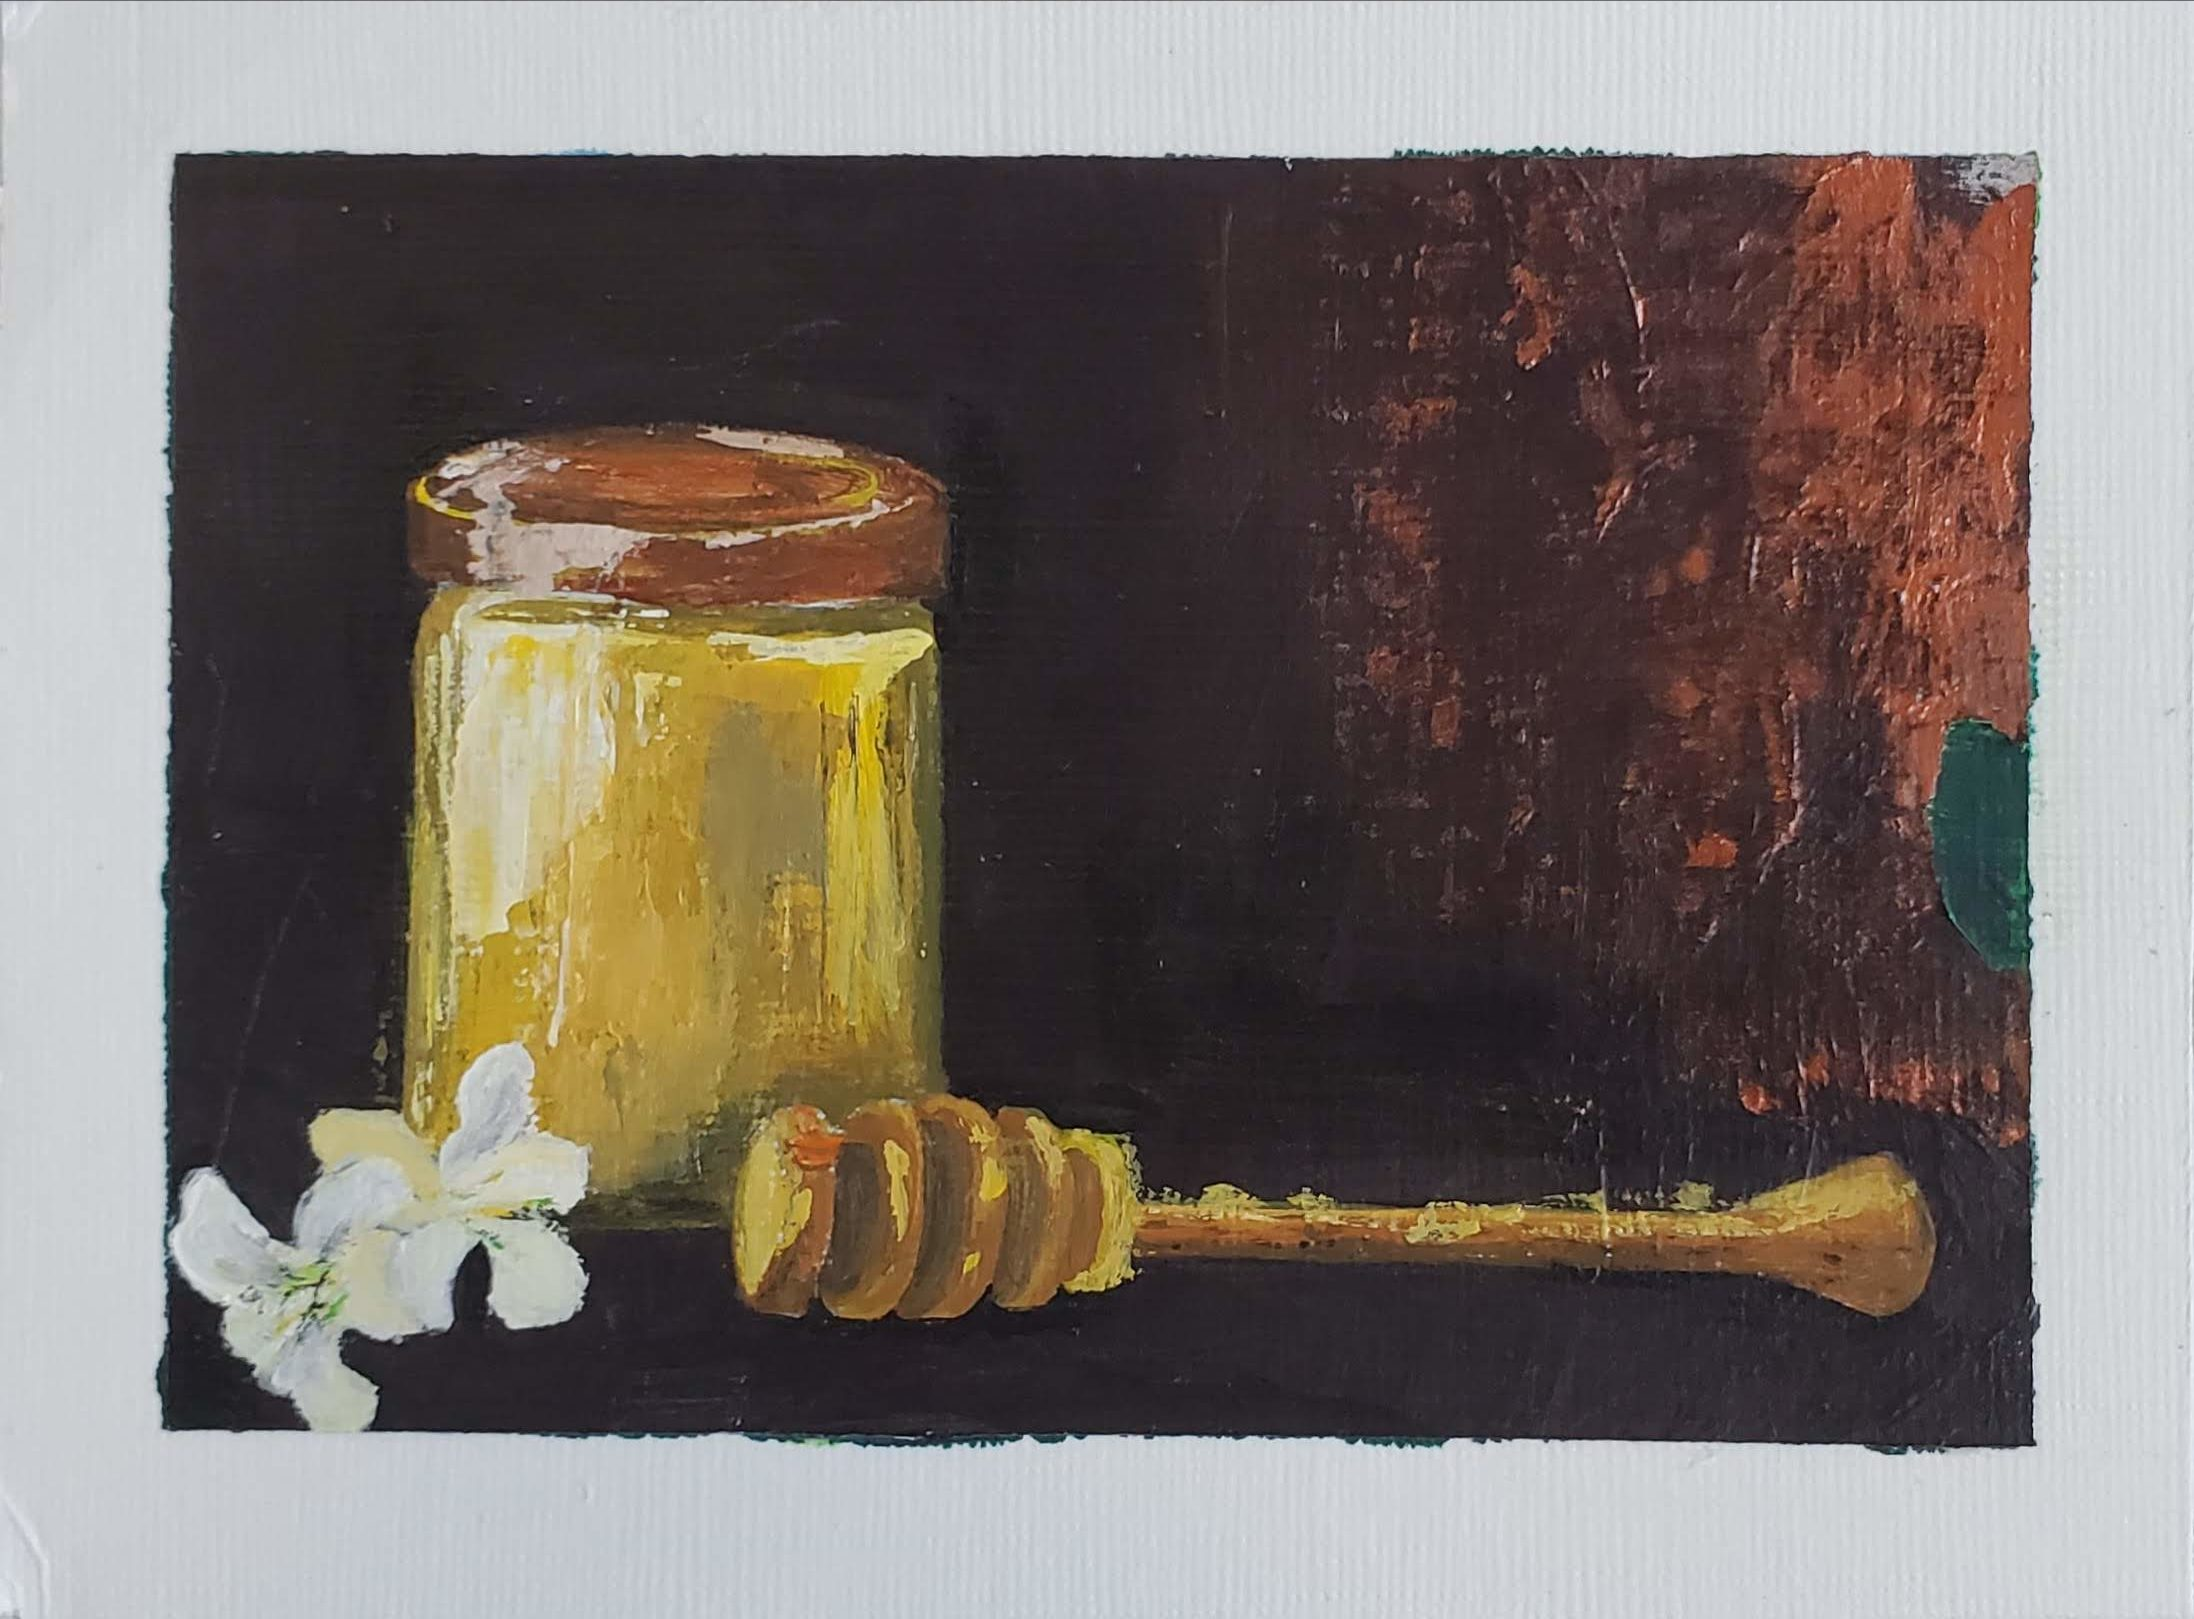 little bit of honey with some white blowers against dark brown and maroon background.